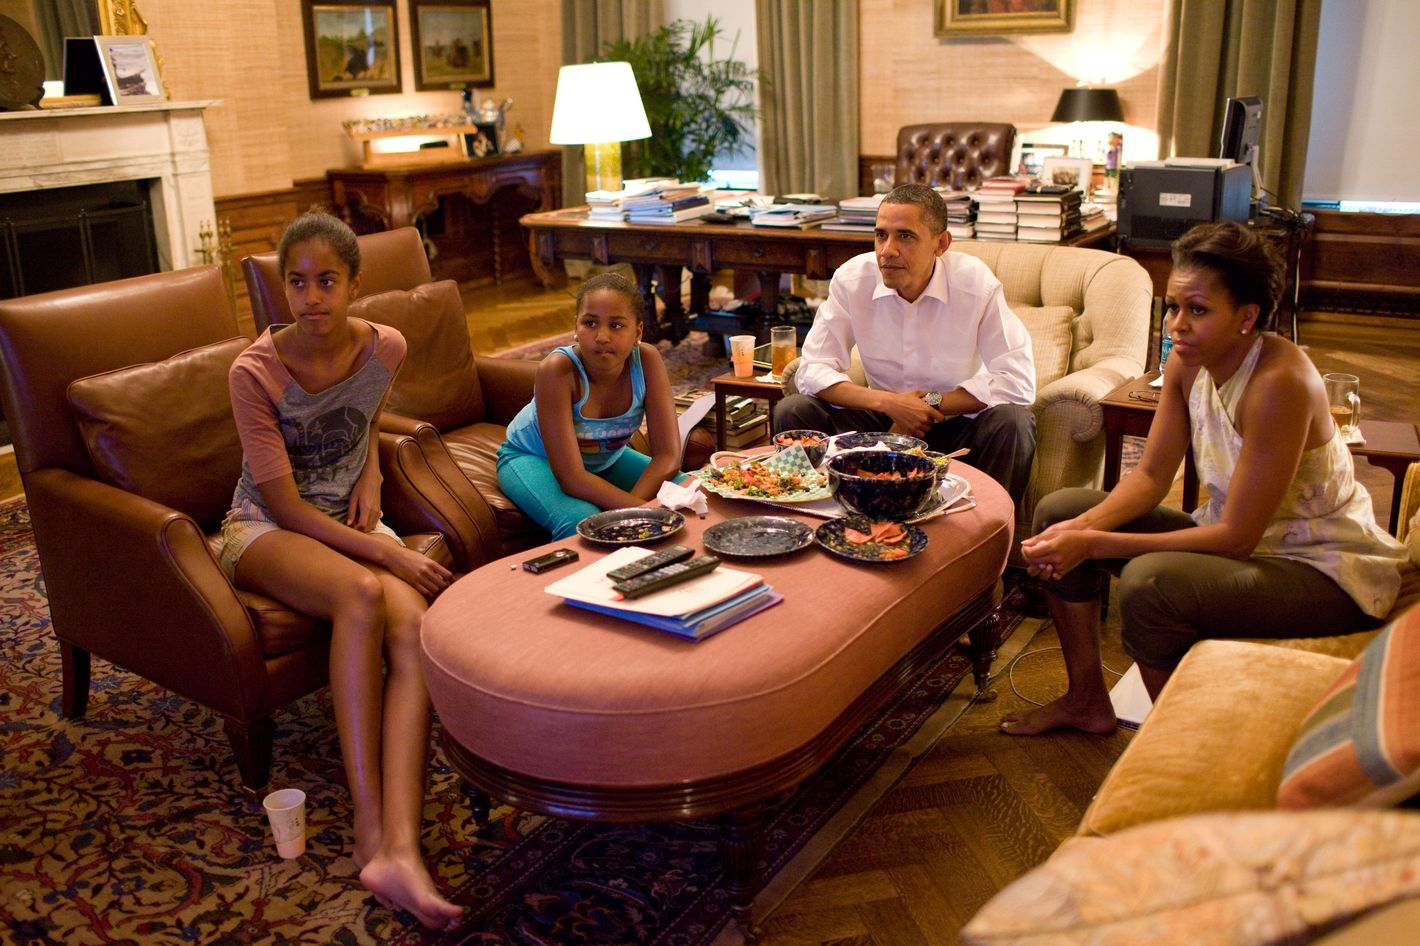 WASHINGTON, DC - JULY 17:  In this handout provided by the White House, U.S. President Barack Obama and first lady Michelle Obama with their daughters Sasha and Malia watch the World Cup soccer game between the U.S. and Japan, from the Treaty Room office in the residence of the White House July 17, 2011 in Washington, DC. The U.S. lost to Japan in a shootout.  (Photo by Pete Souza/The White House via Getty Images)